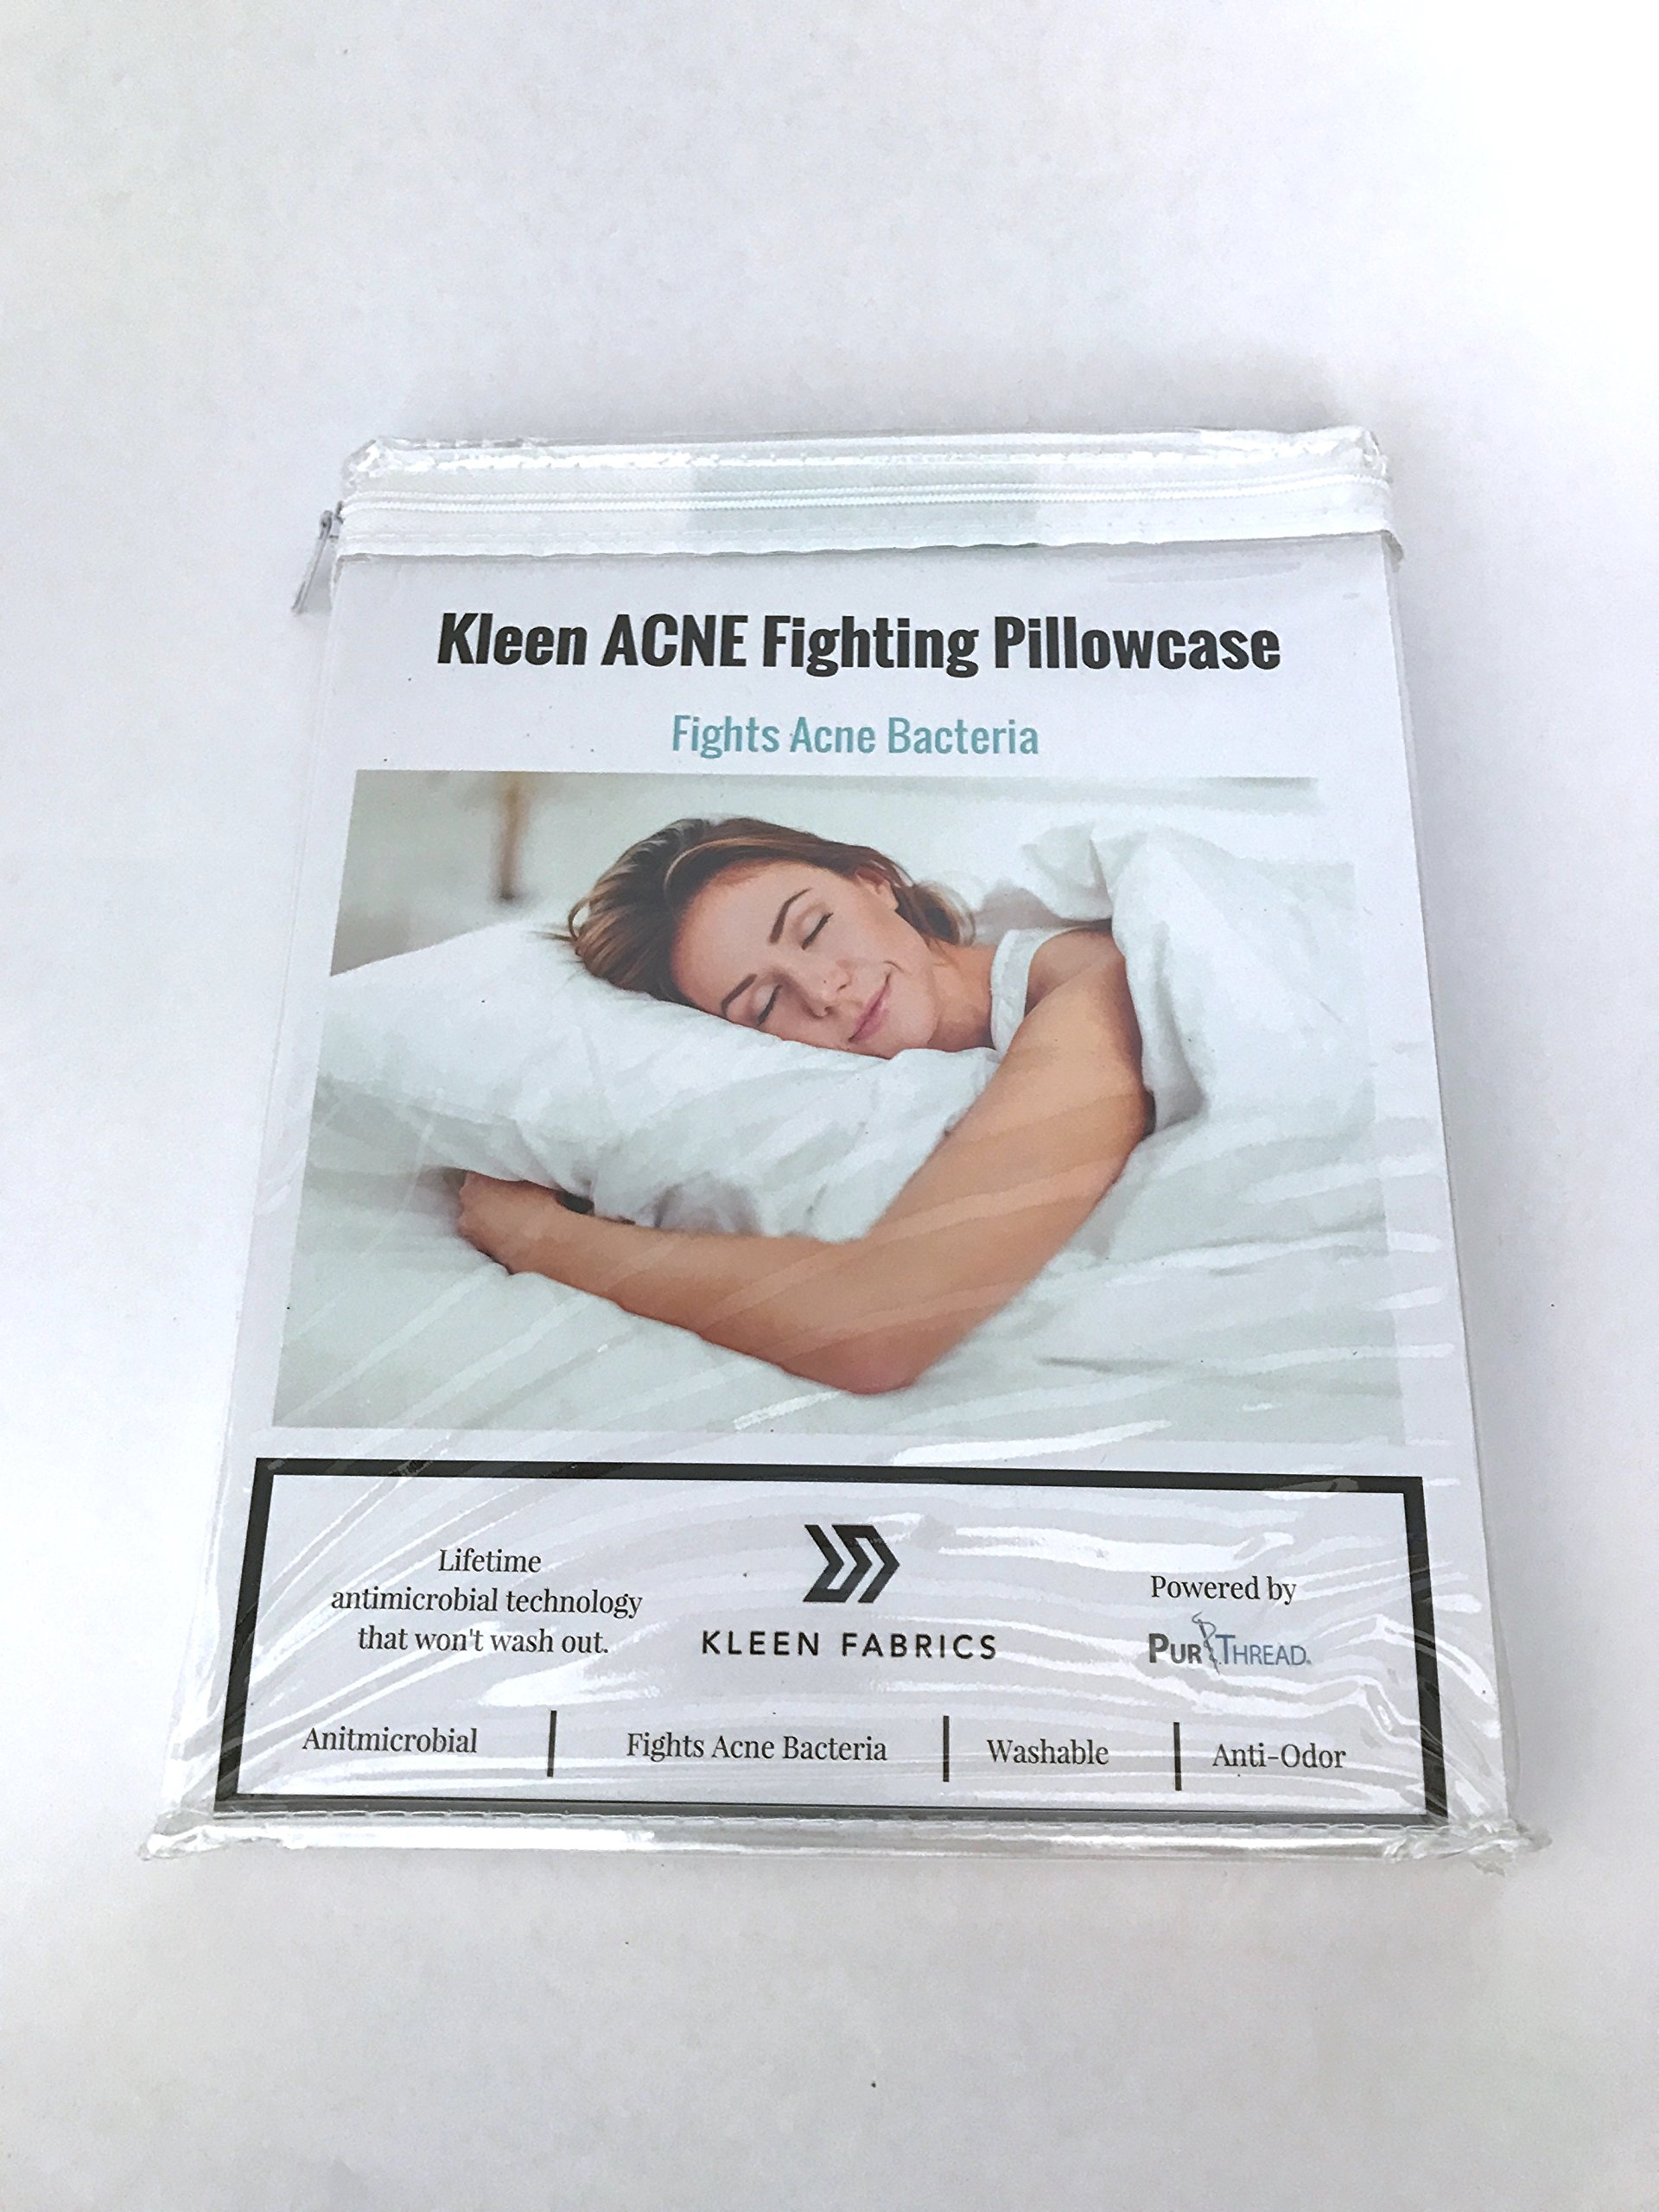 Kleen Fabrics Acne Fighting Antimicrobial Pillowcase with PurThread Silver Technology